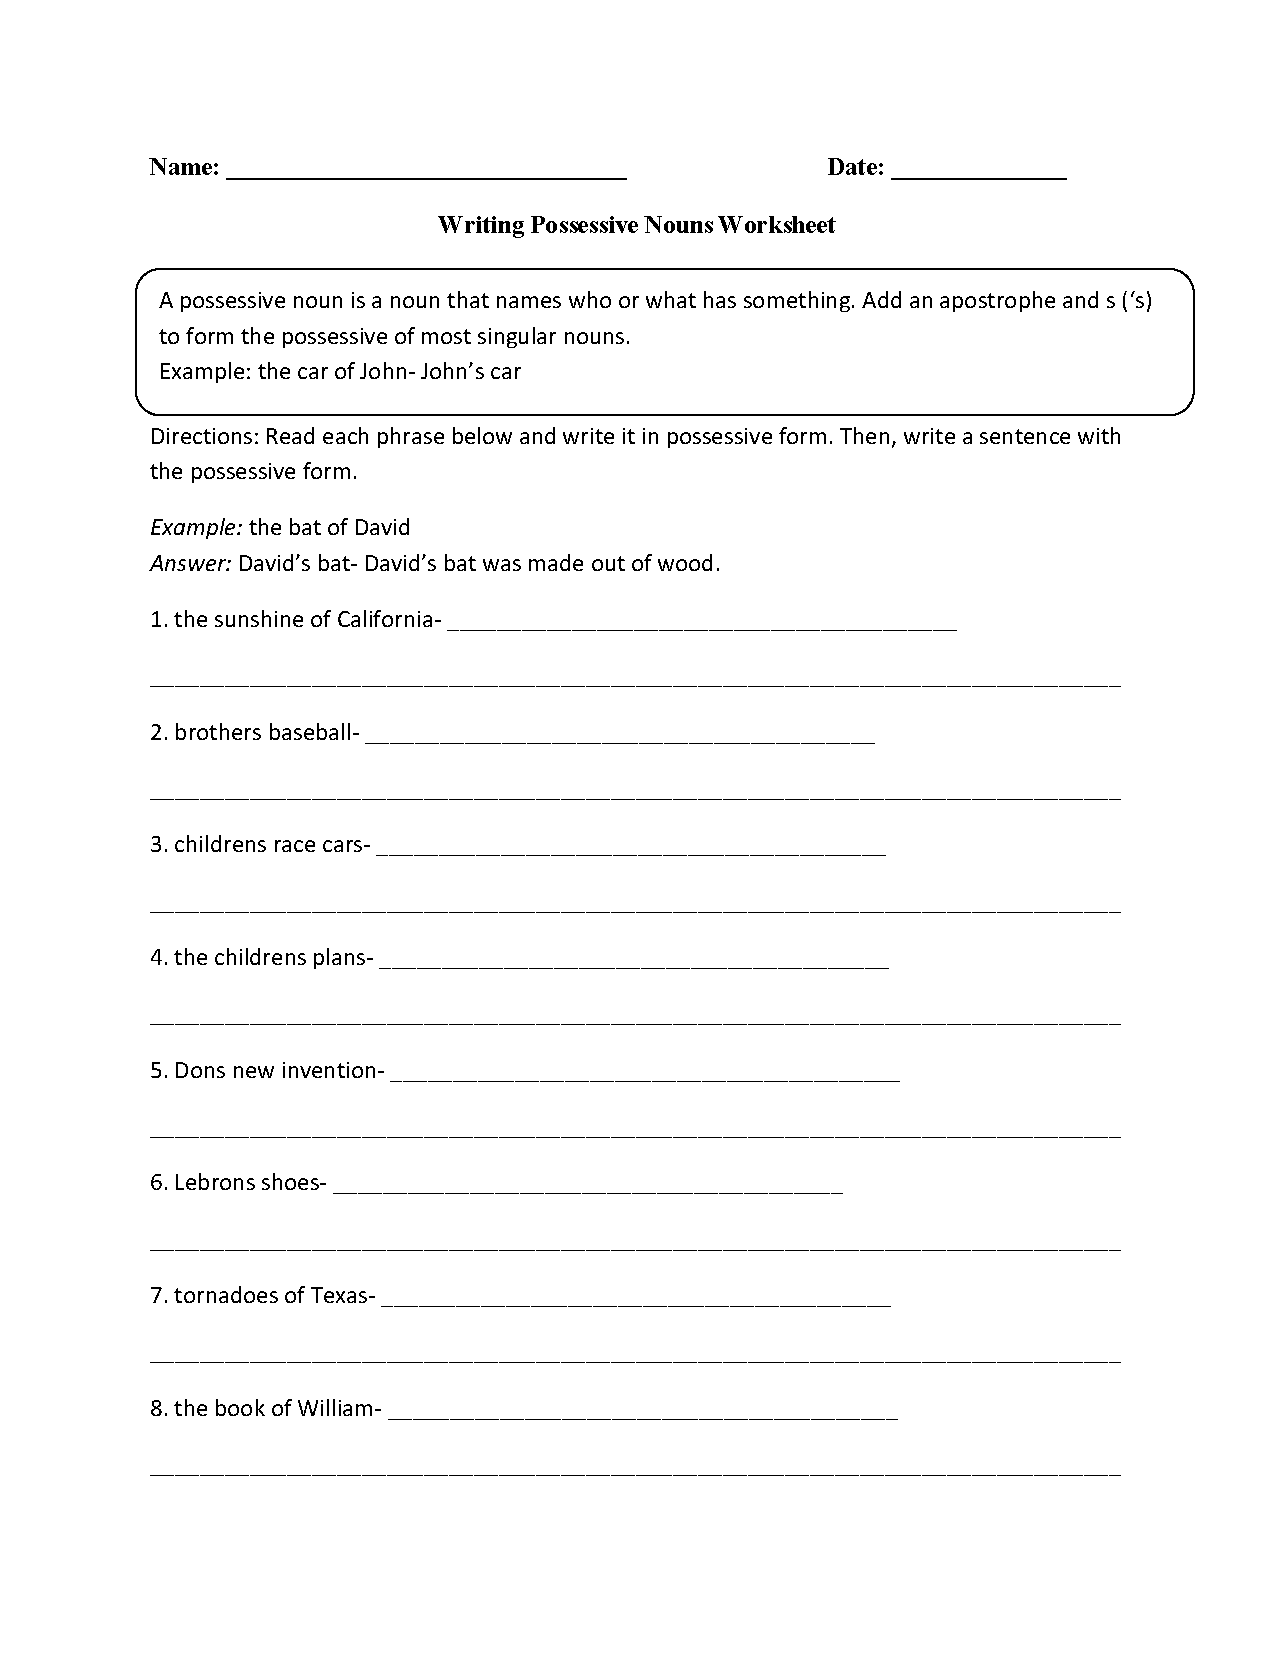 Writing with Possessive Nouns Worksheet Hmw – Singular Possessive Nouns Worksheets